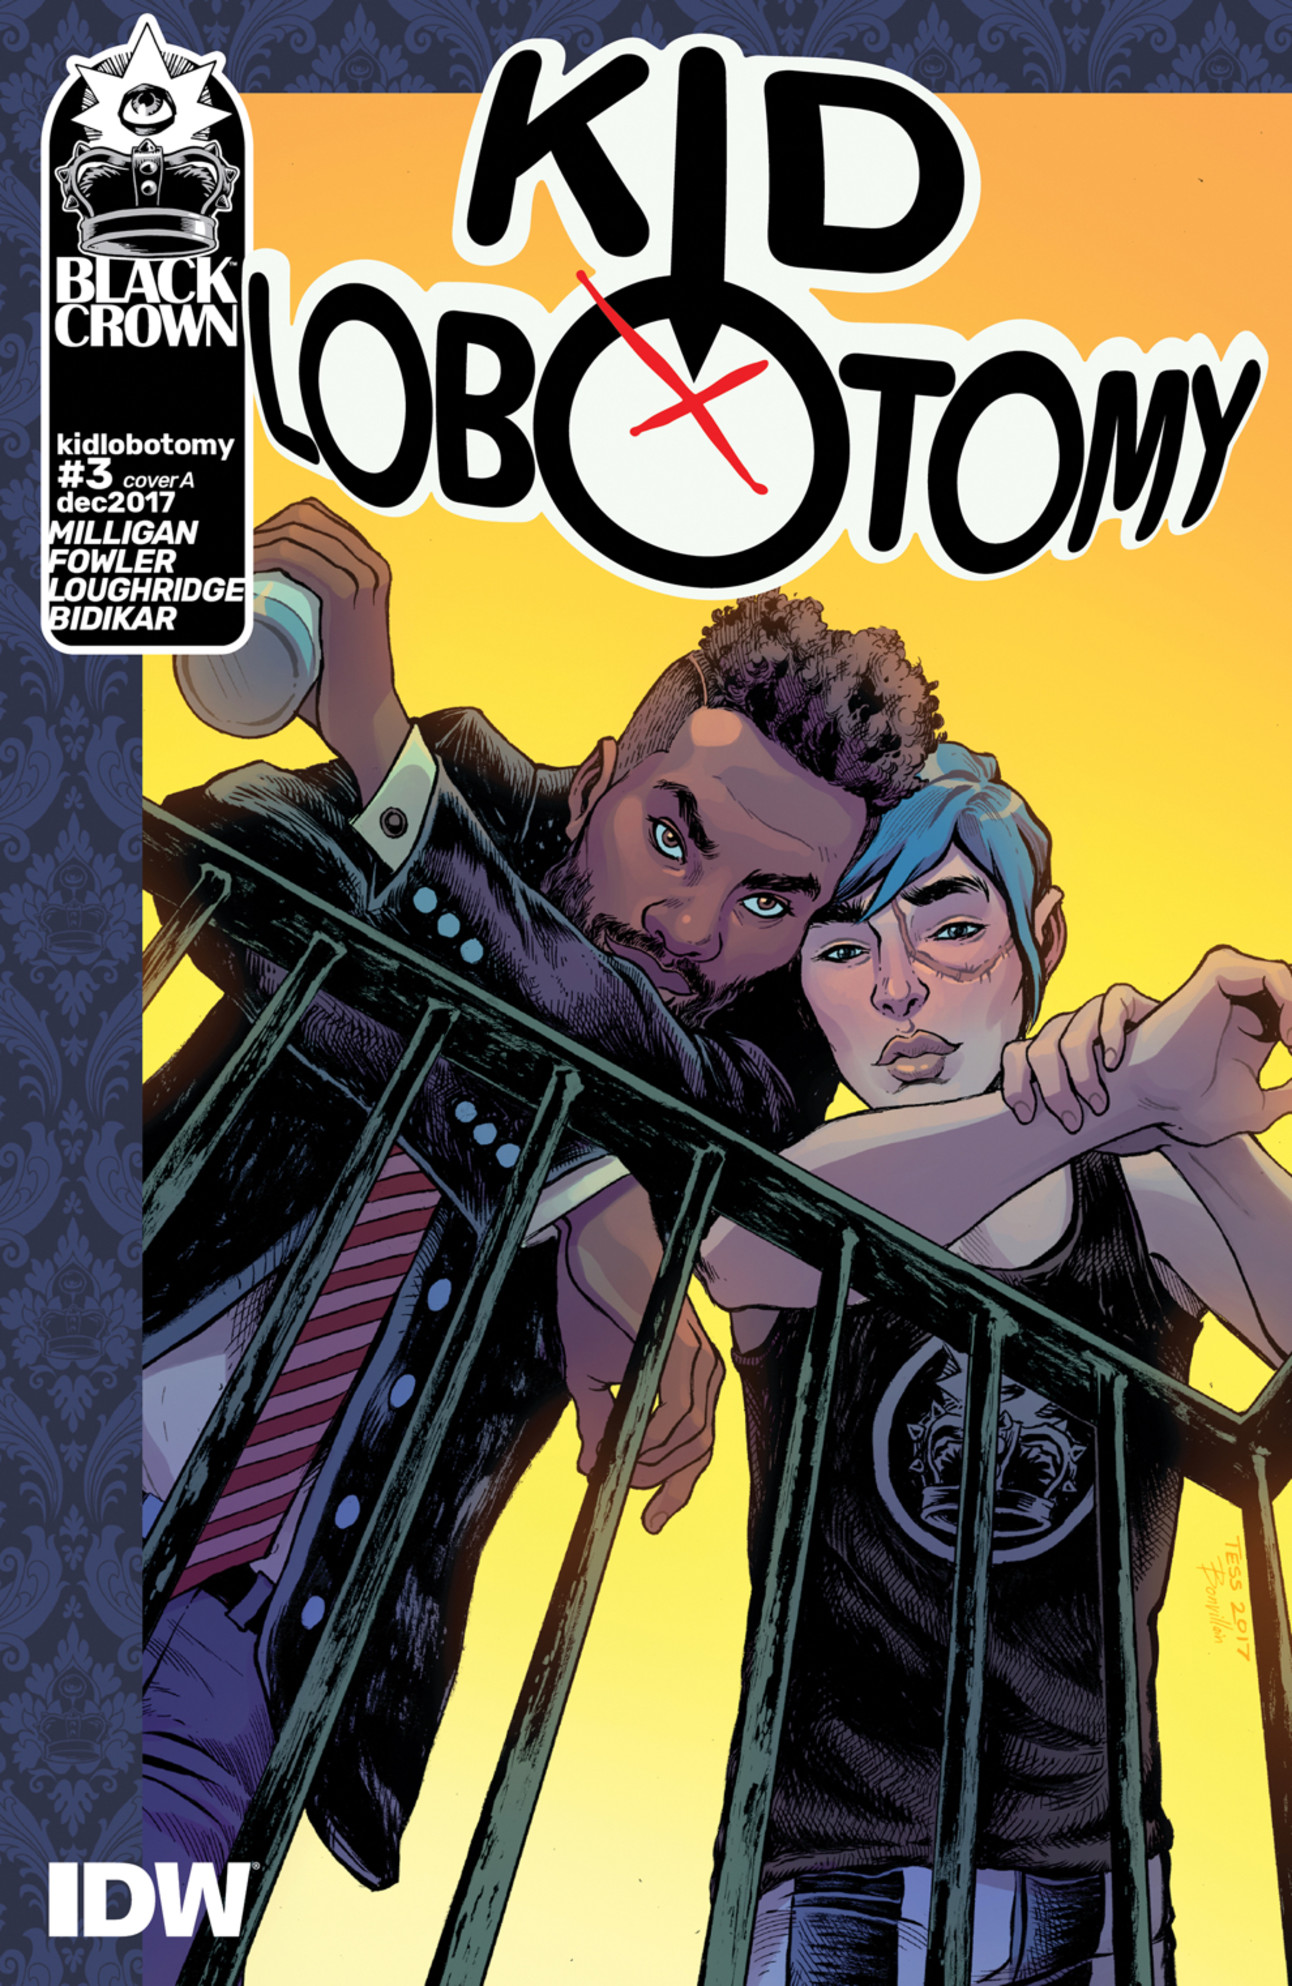 kidlobotomy03-cover-copy.jpg